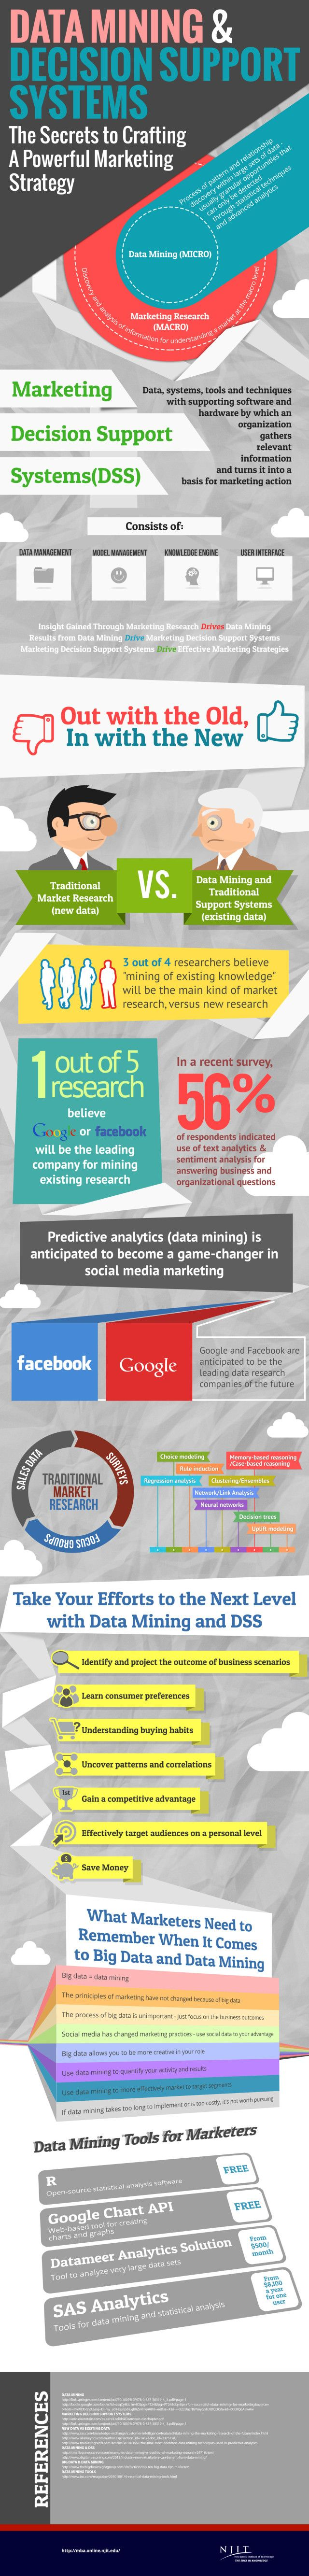 Infographic: The Power of Data Mining and Decision Support Systems